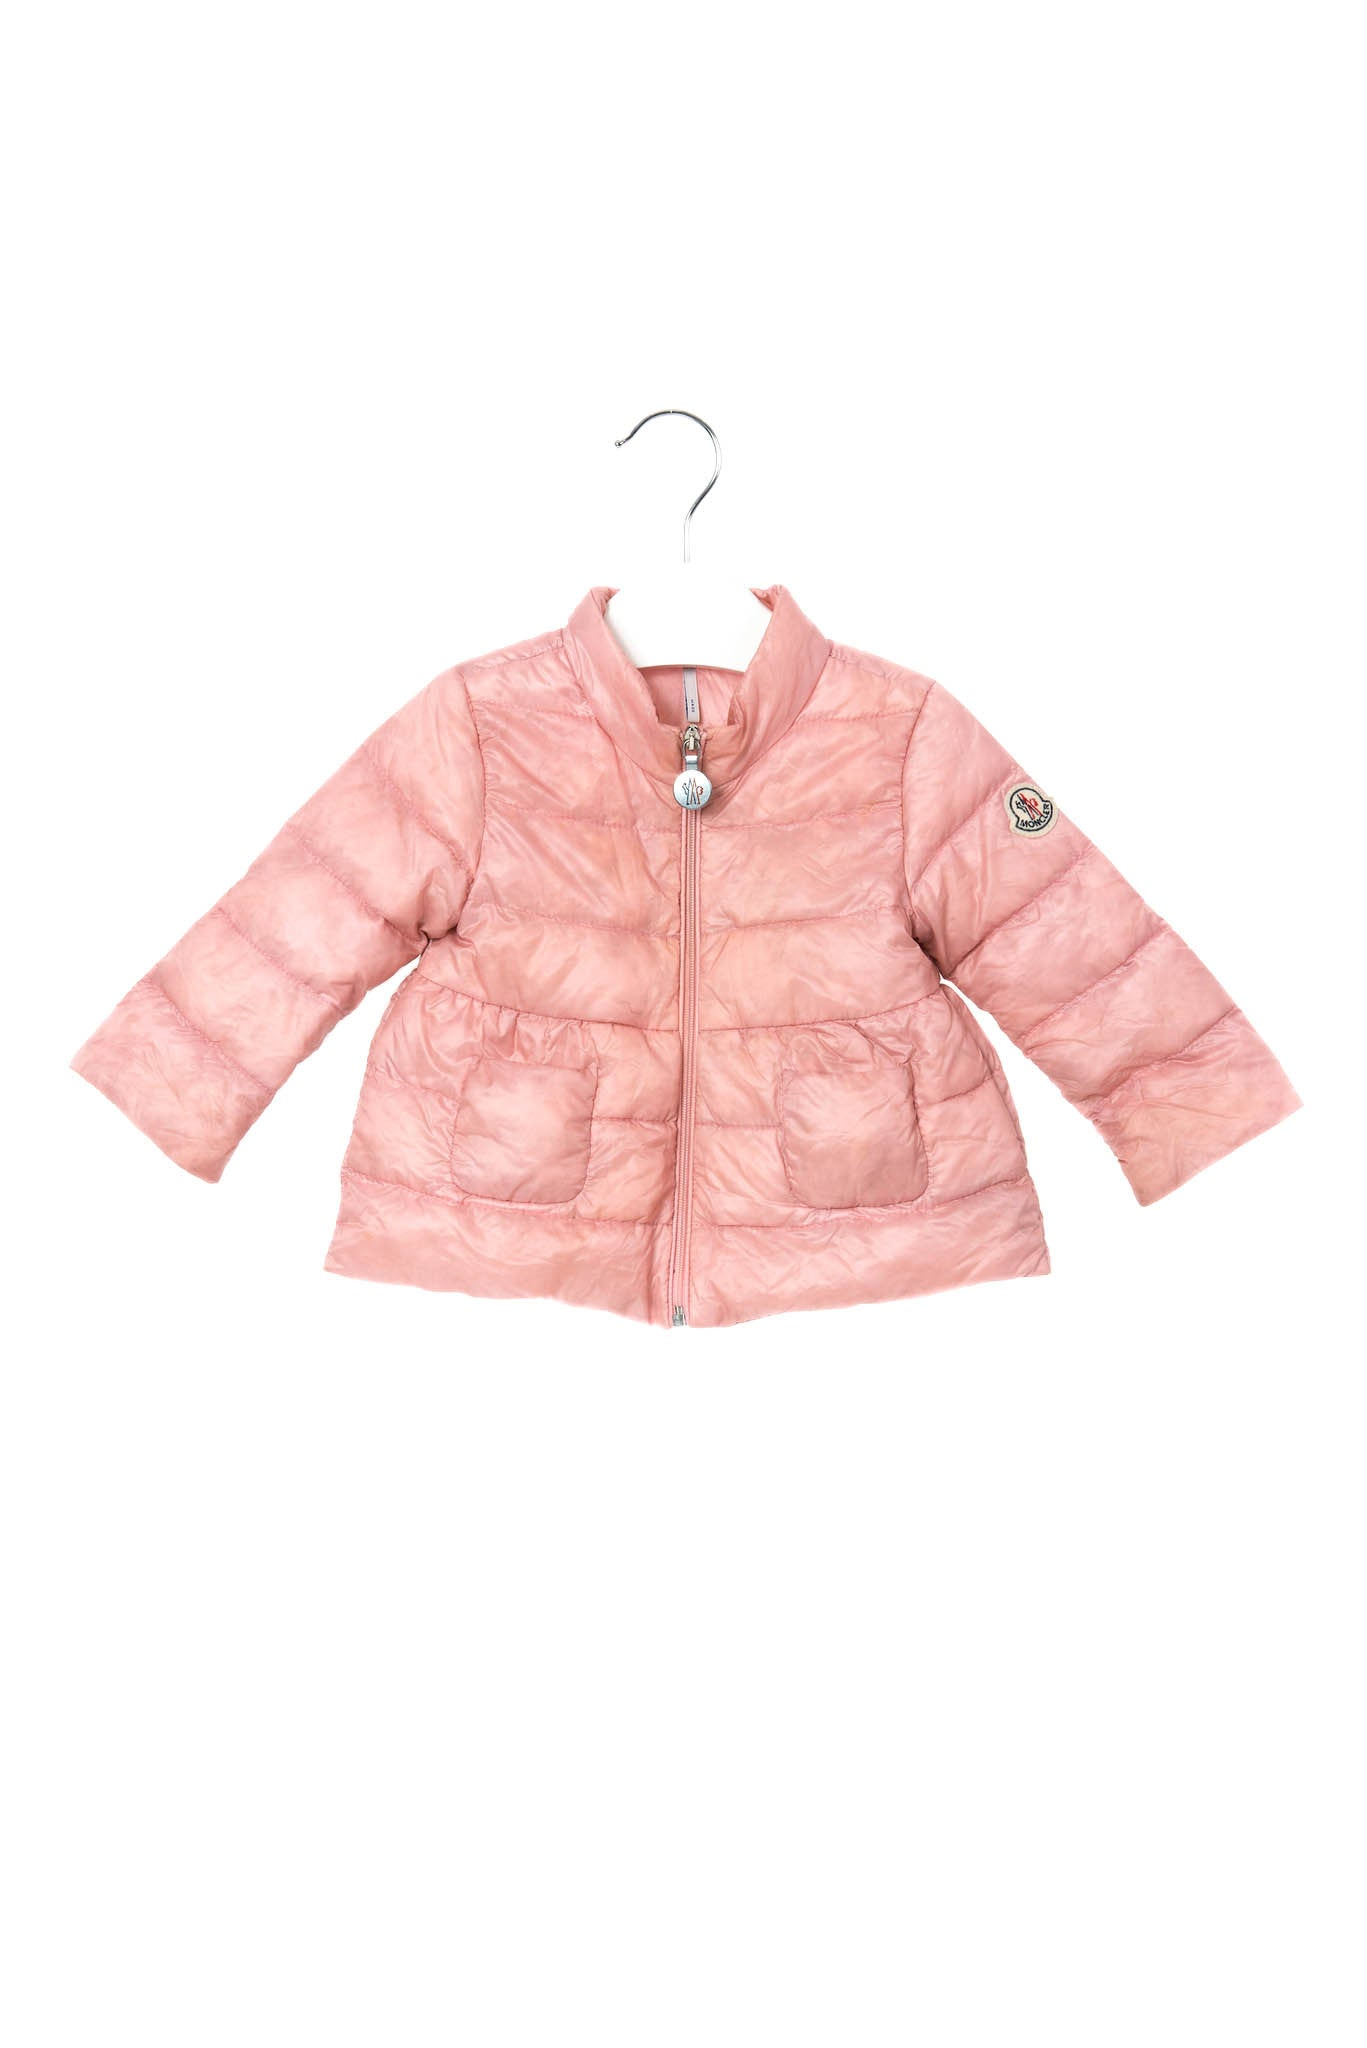 10001300 Moncler Baby~Puffer Jacket 3-6M at Retykle